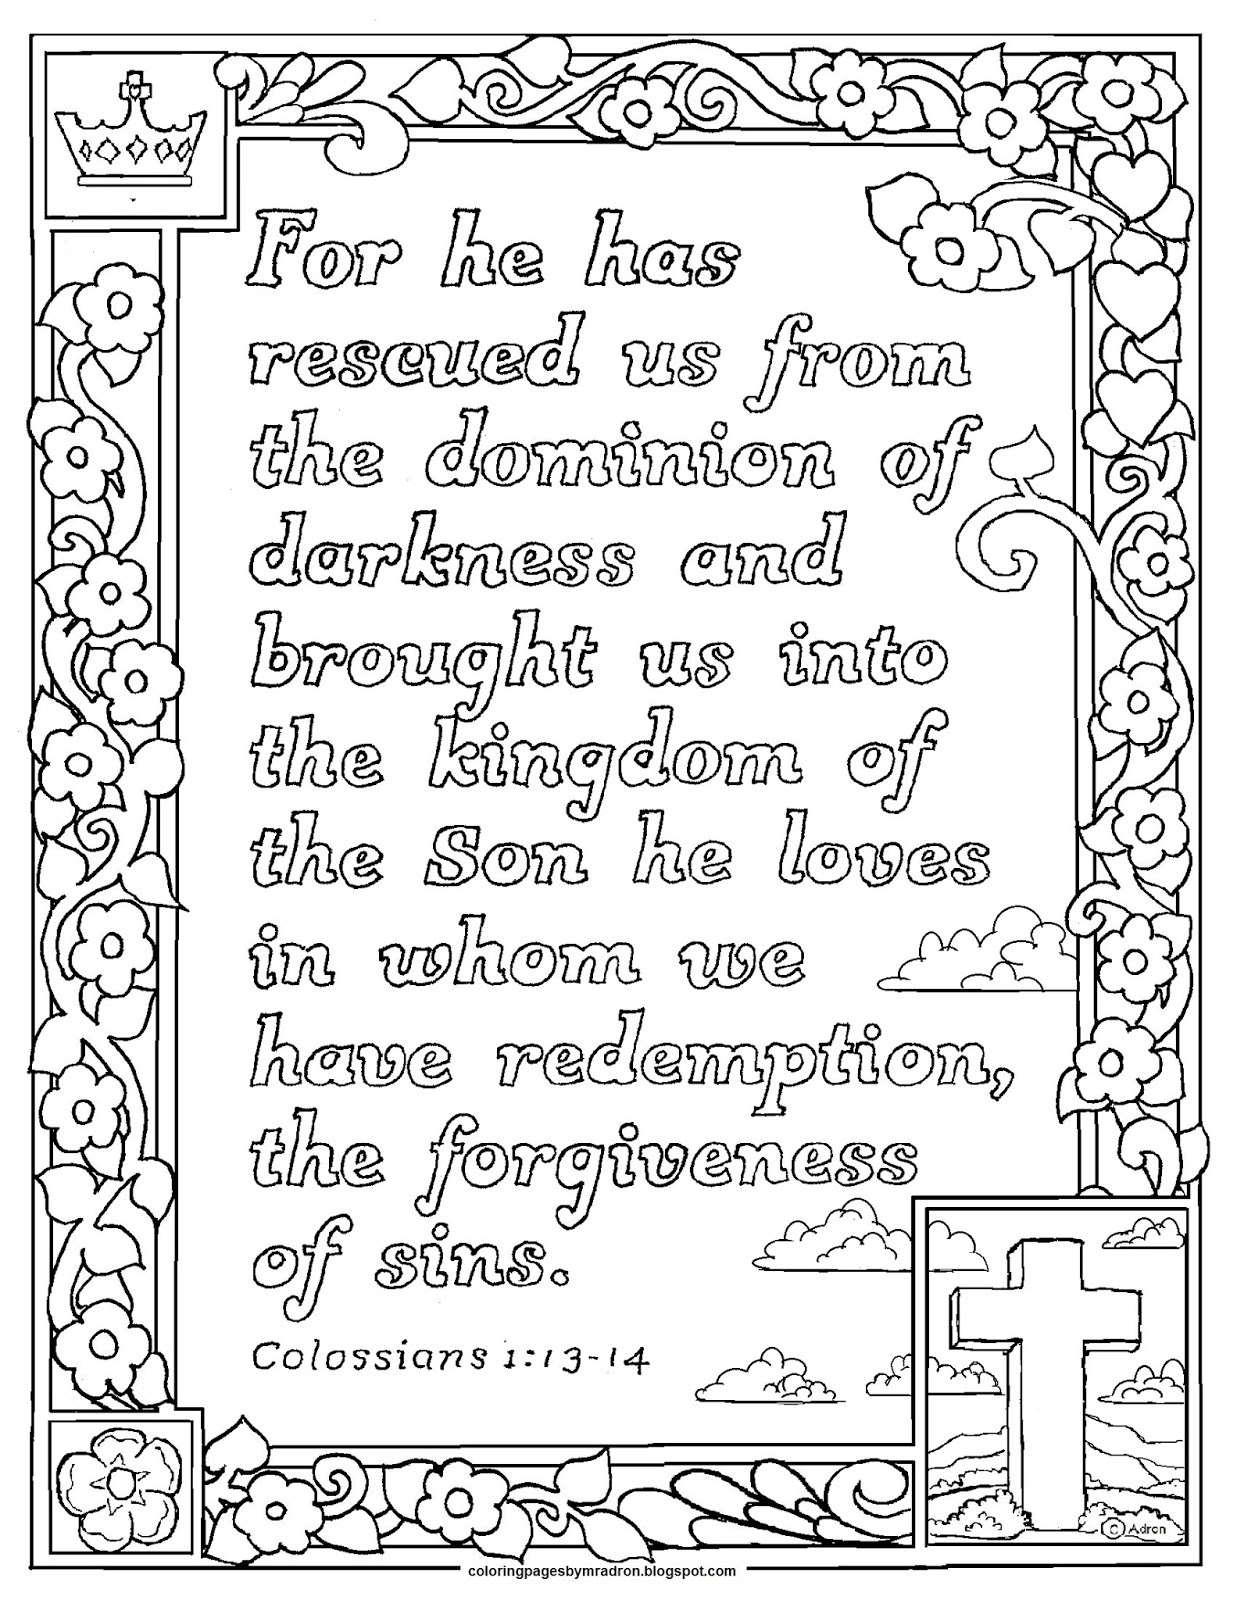 Coloring Pages For Kids By Mr Adron Colossians 113 14 Print And